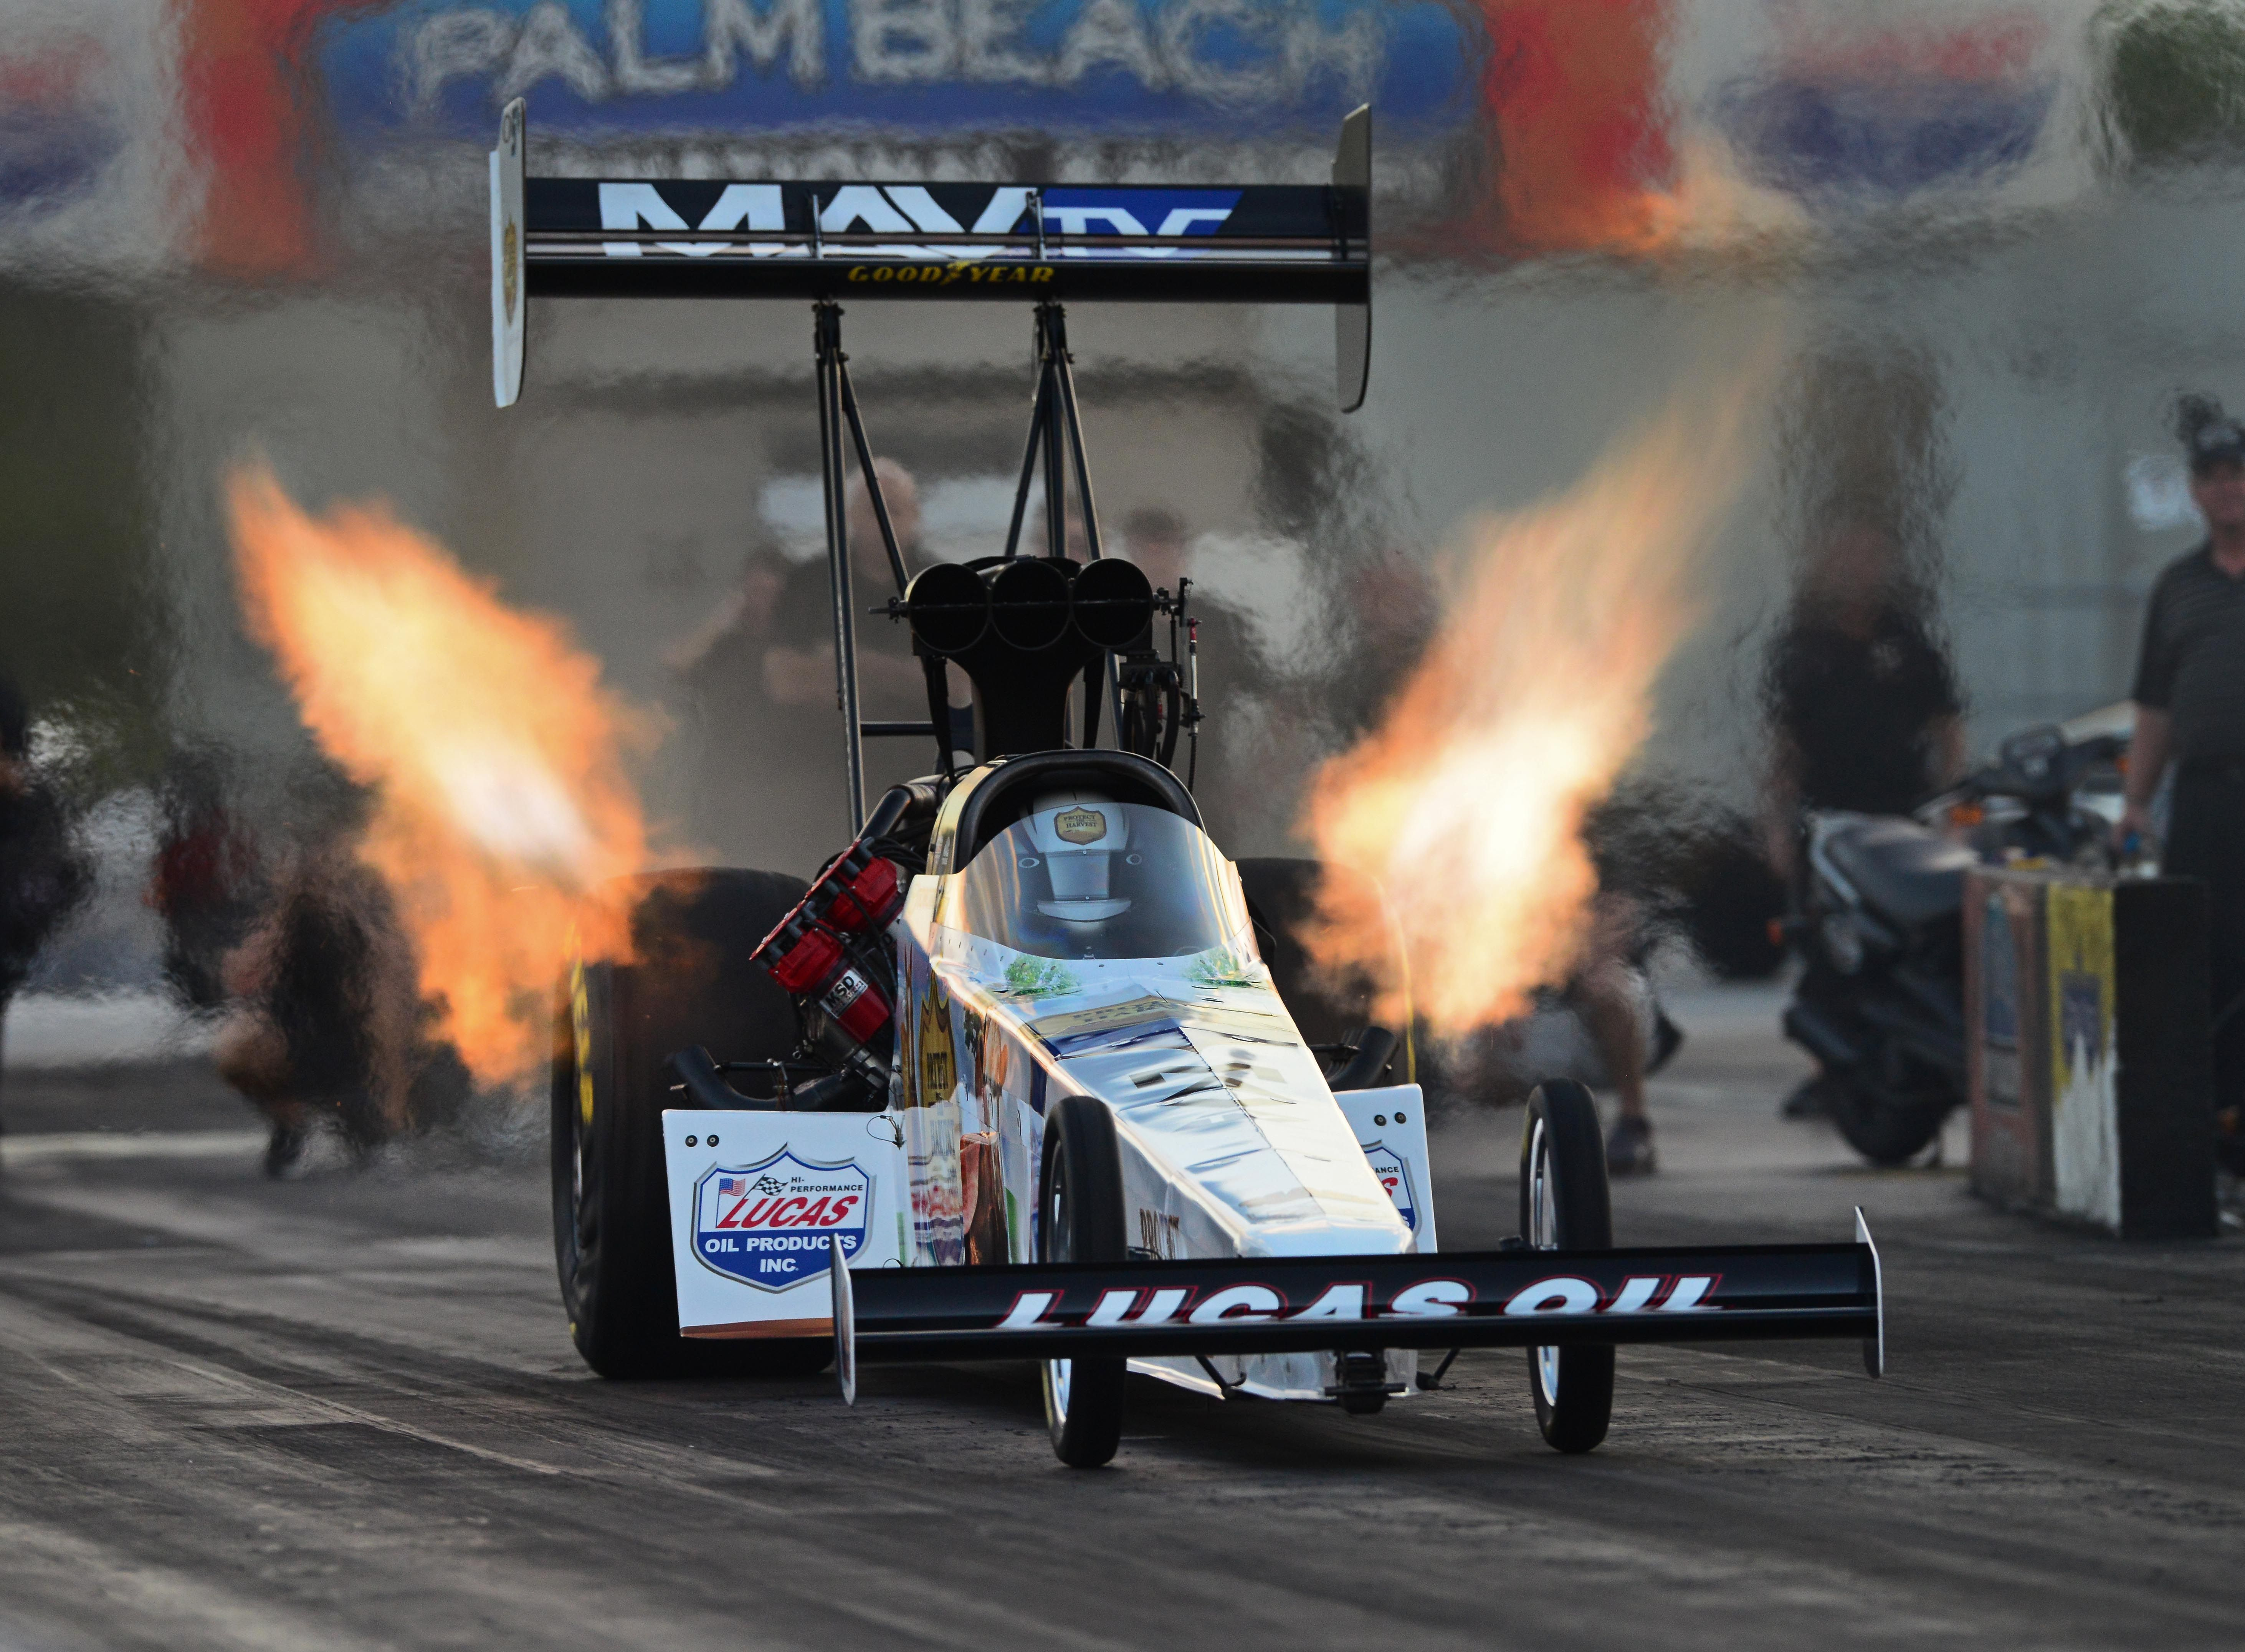 Top Fuel Dragster nhra drag racing race hot rod rods j | DRAGSTERS ...